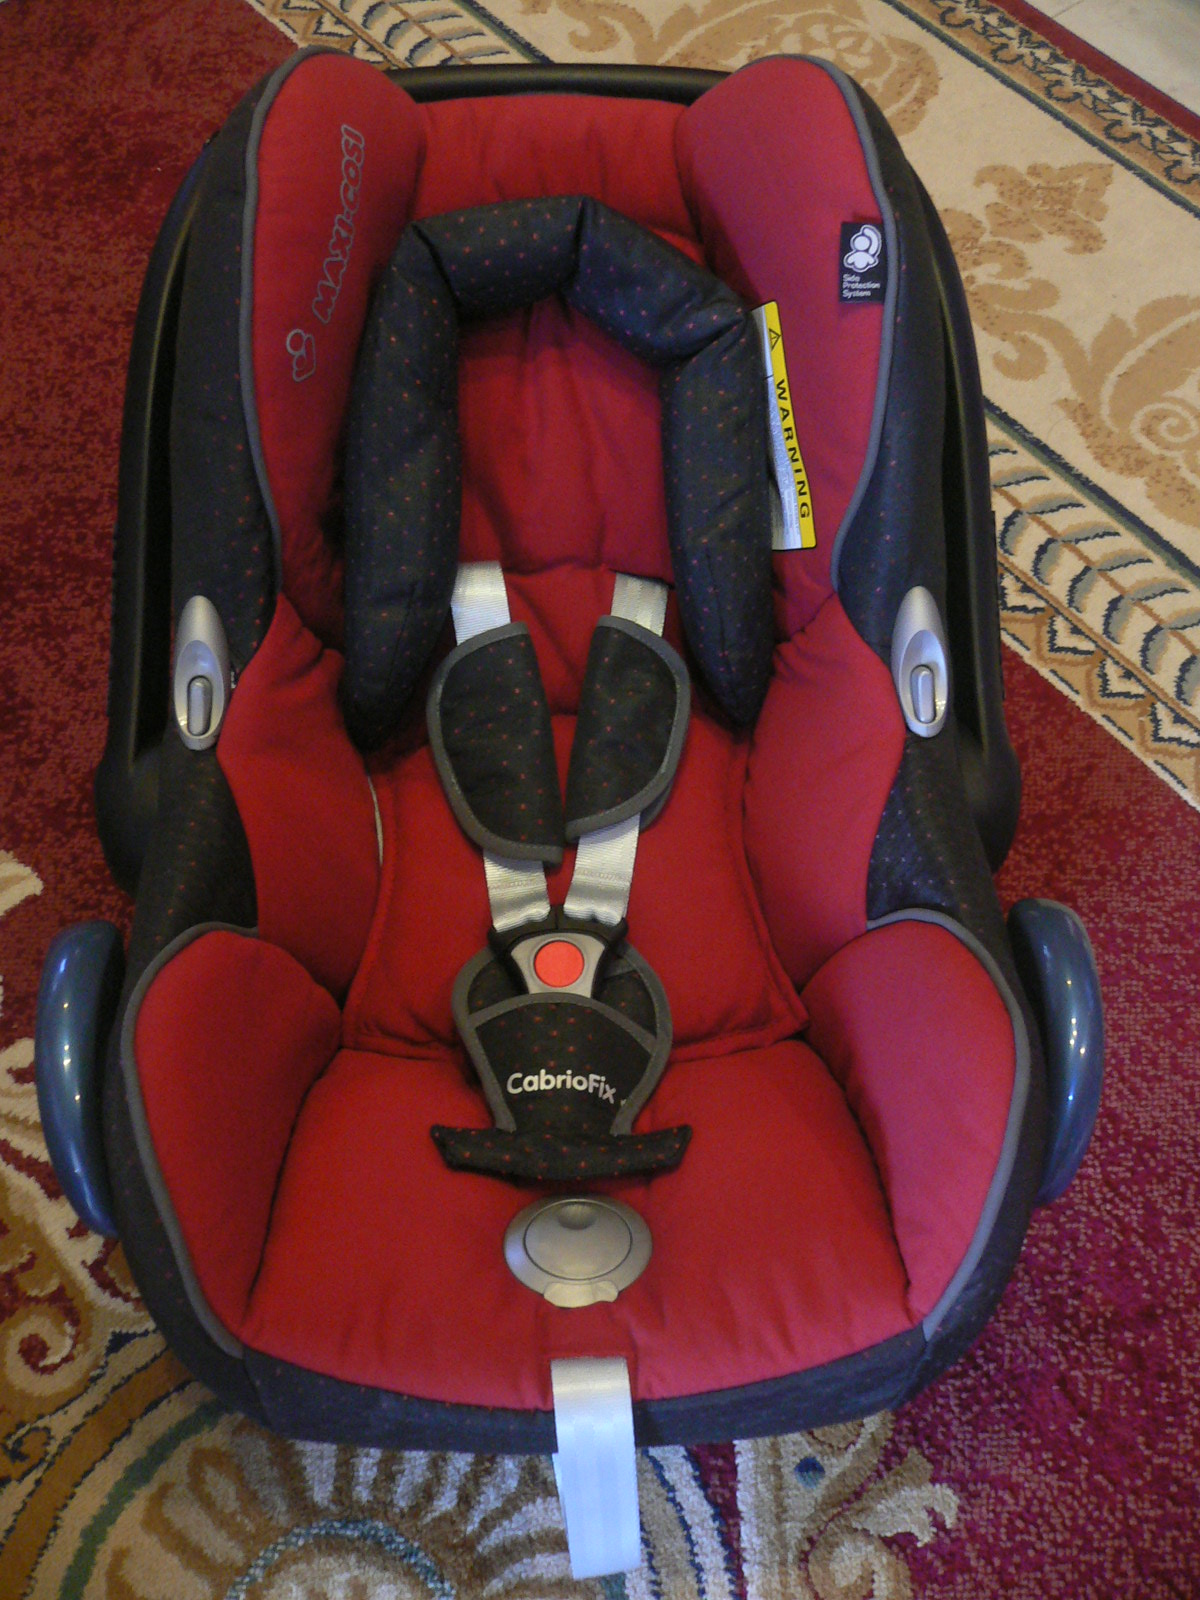 yaz very own strollers safe haven maxi cosi cabrio tango red 09 2010. Black Bedroom Furniture Sets. Home Design Ideas